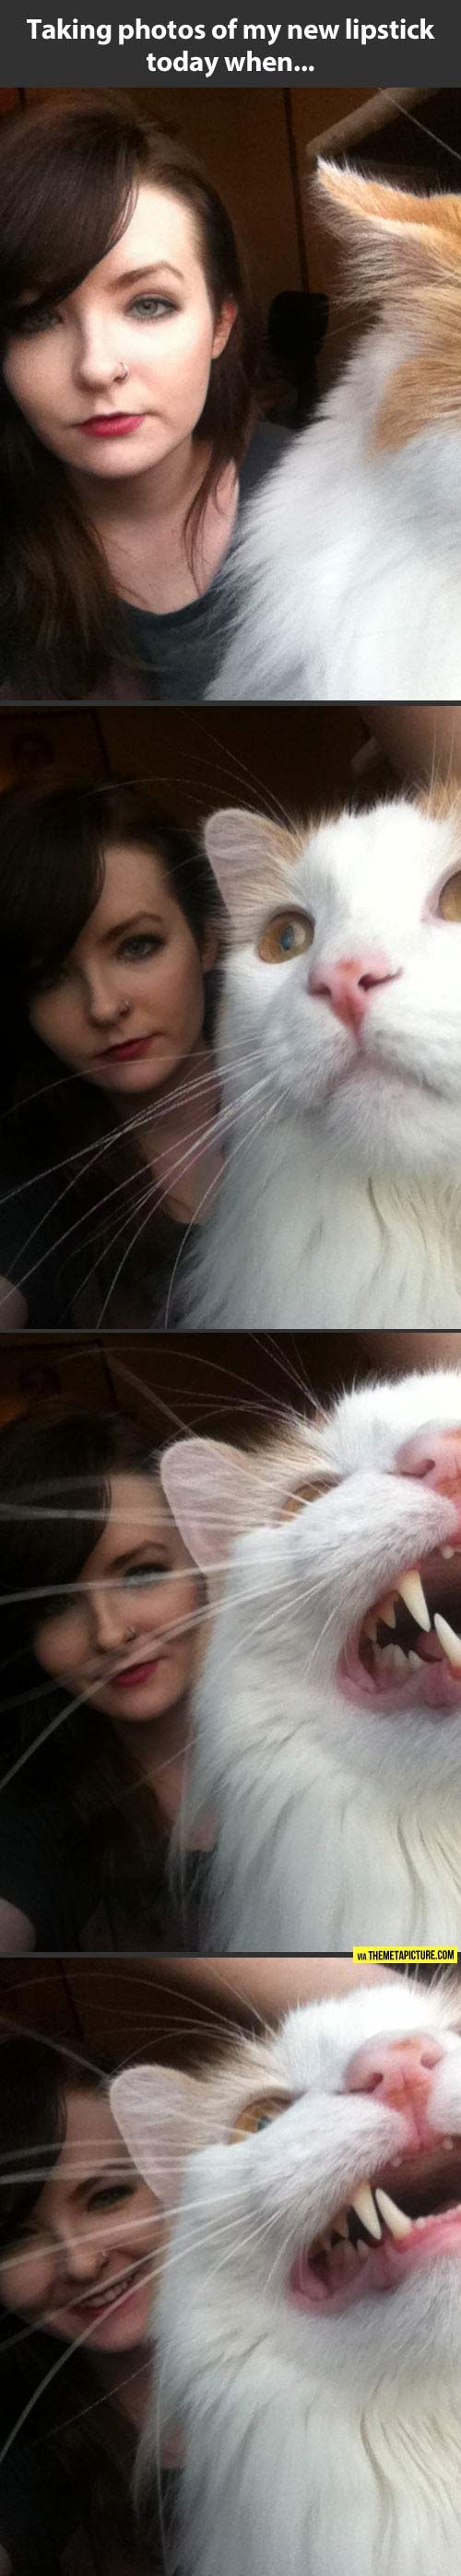 Cats.  Photobombing like a boss.